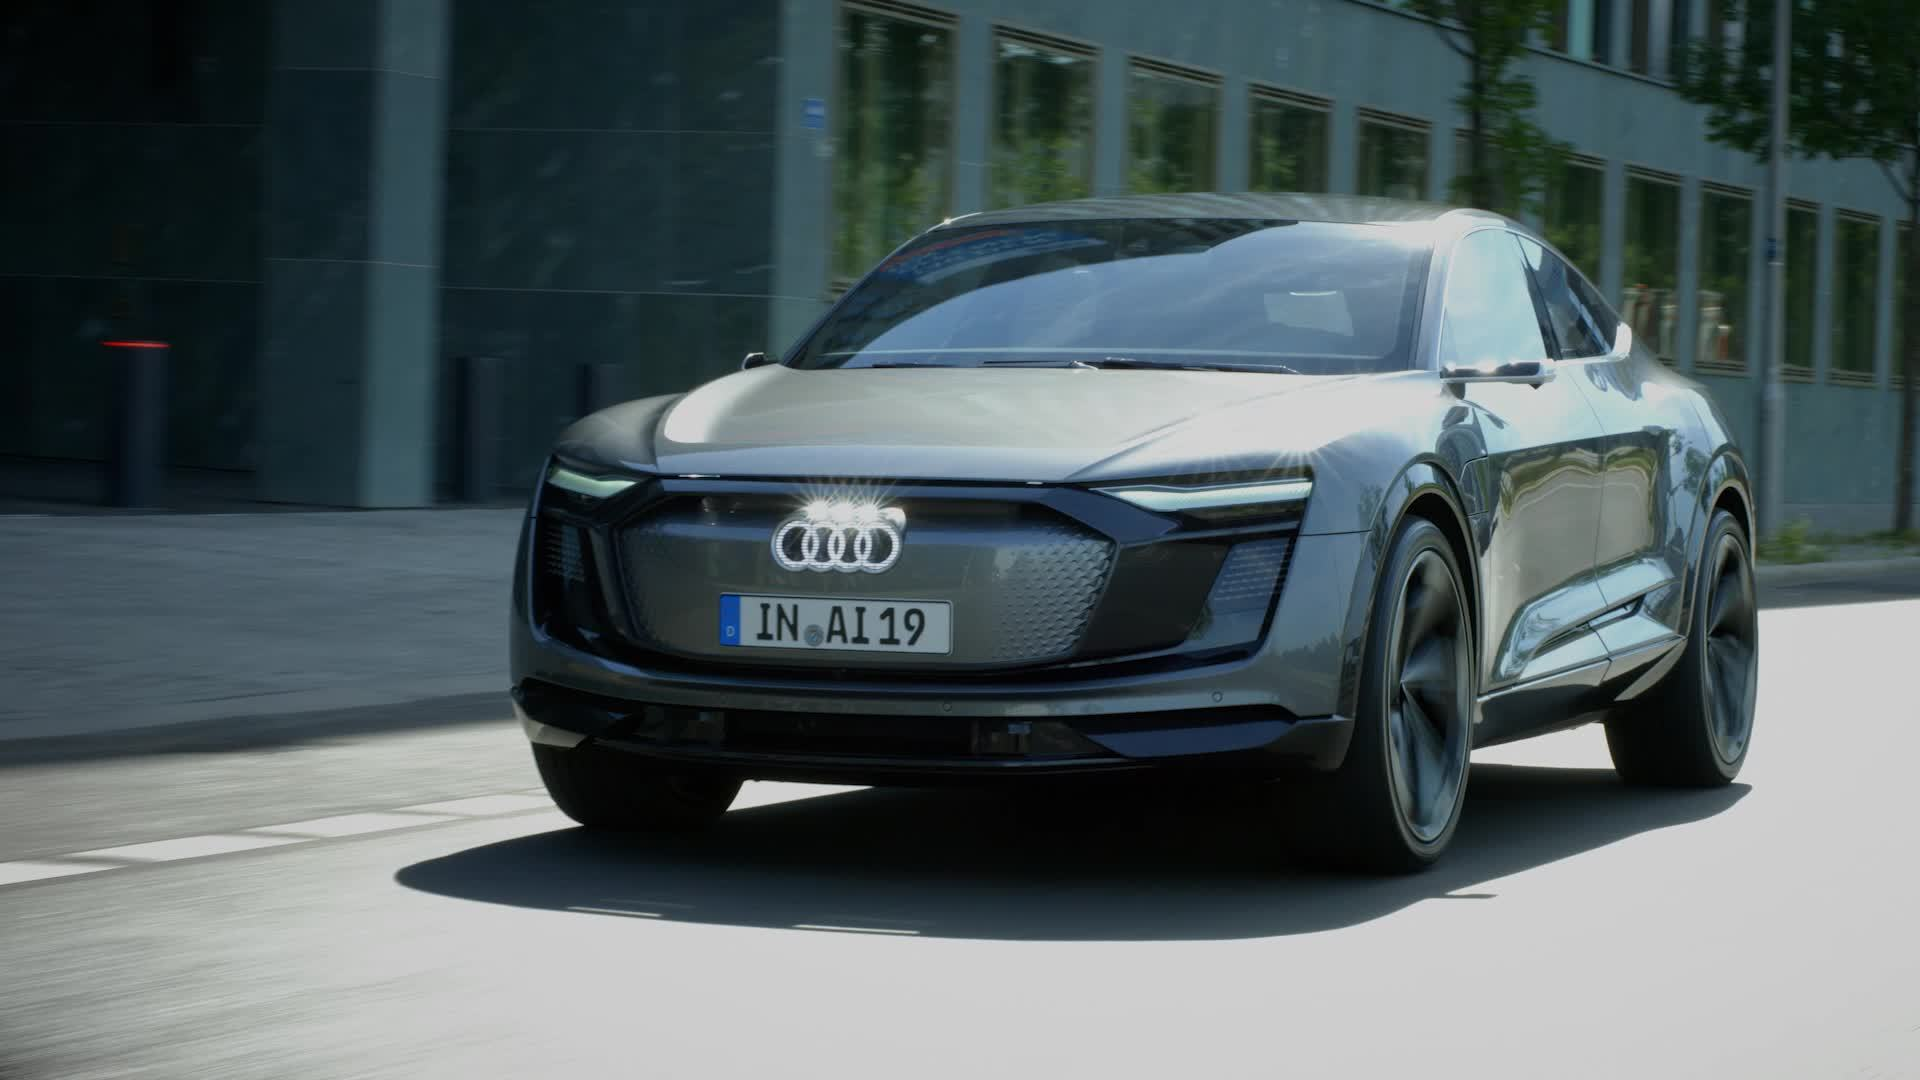 Audi Elaine concept car – highly automated at level 4 ...